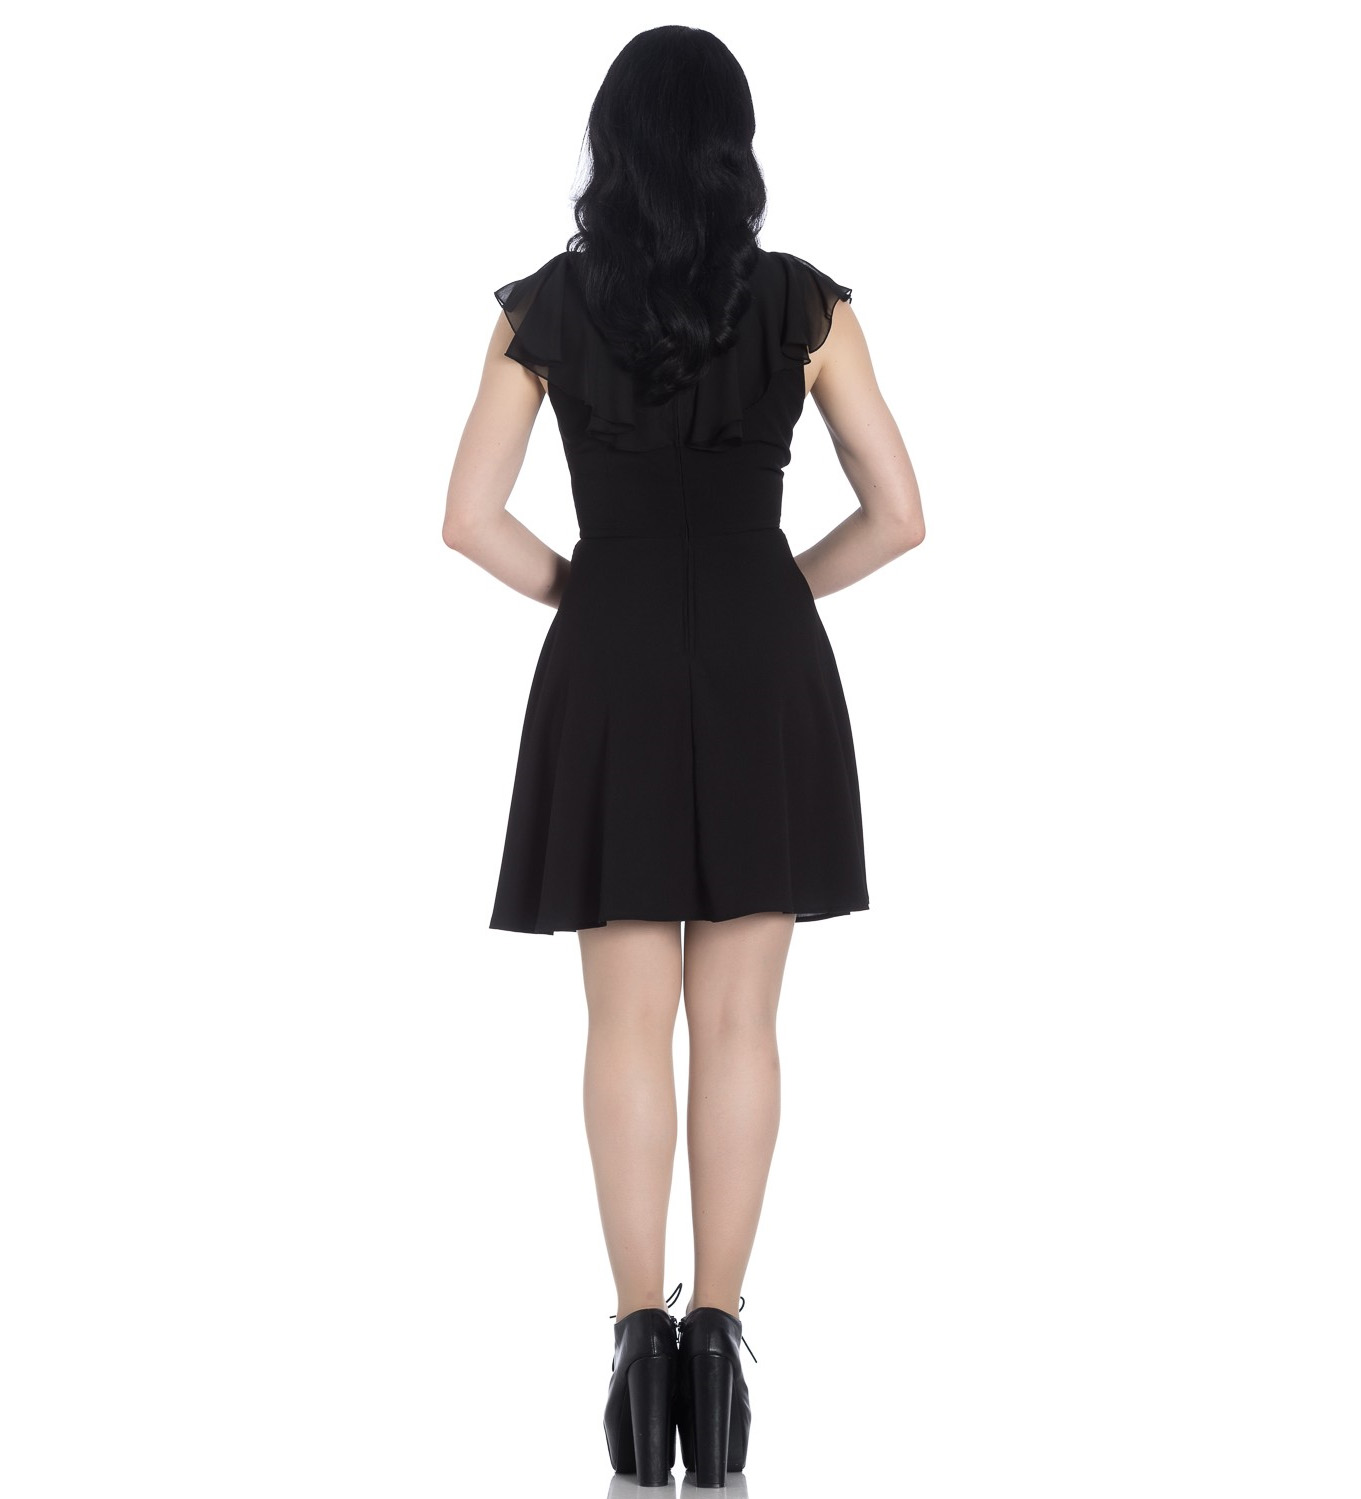 Hell-Bunny-Floaty-Lace-Up-Goth-Witch-Punk-Mini-Dress-ONYX-Black-All-Sizes thumbnail 13